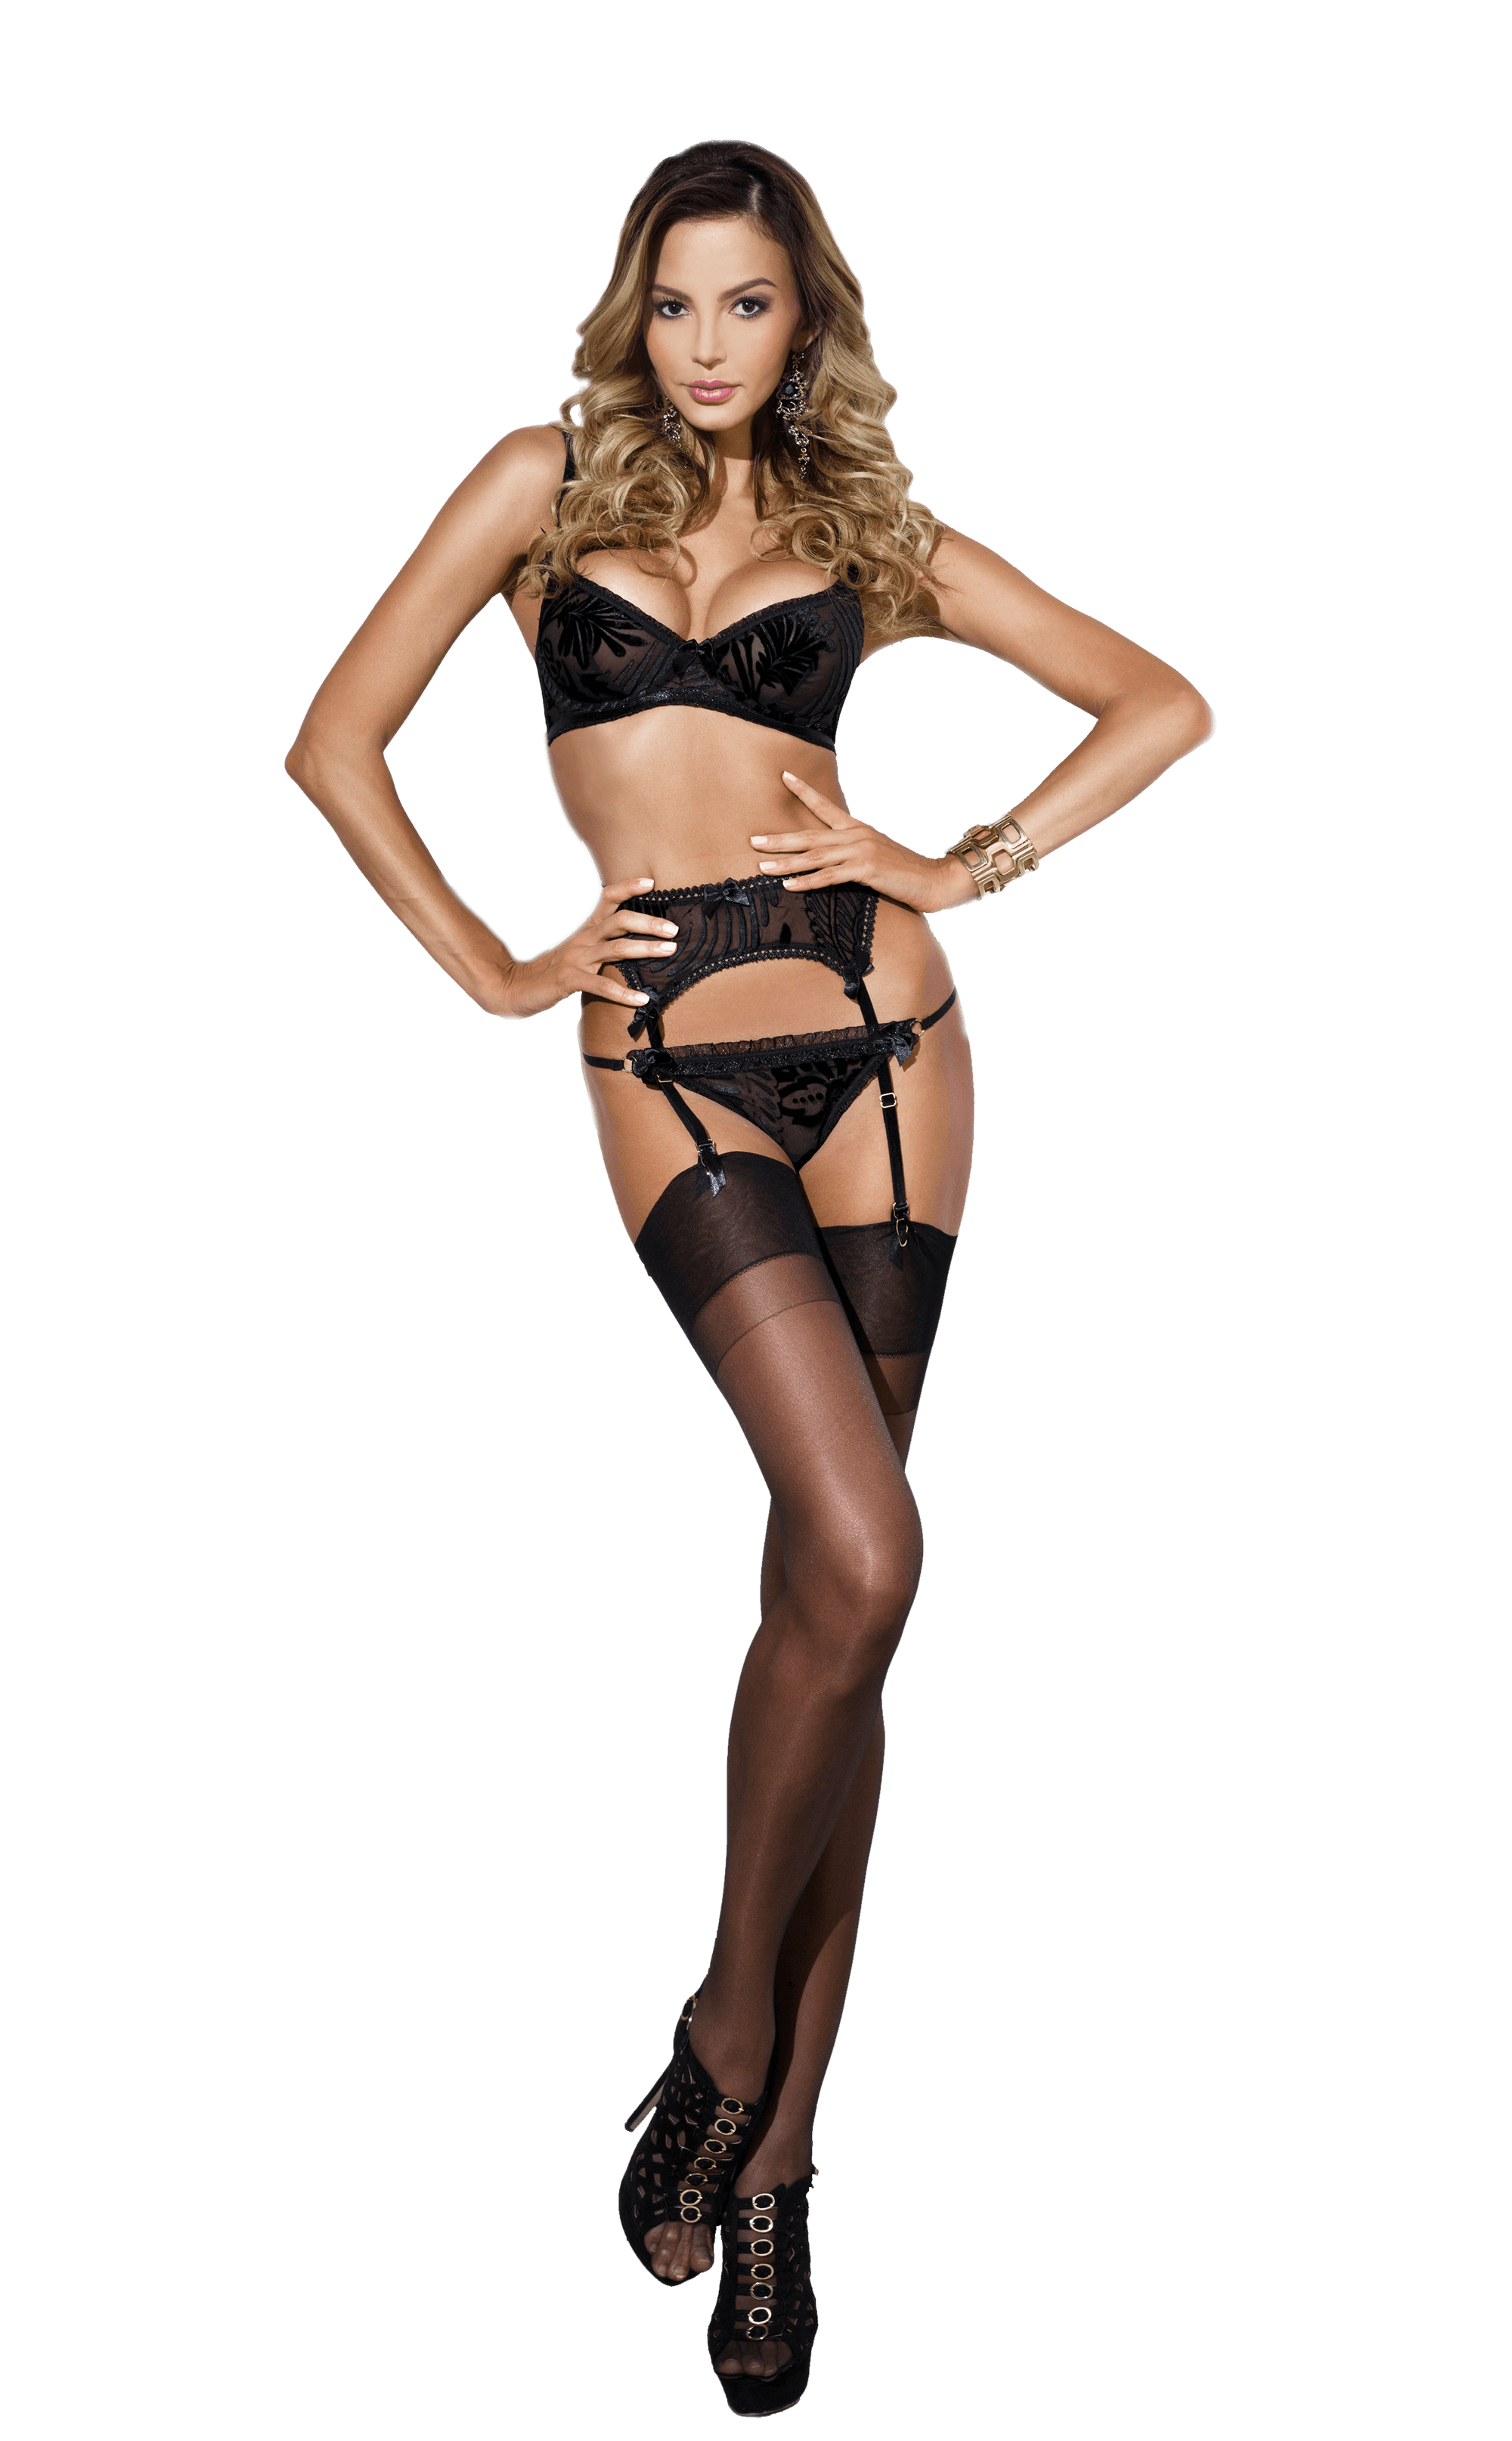 Lap Dancing Model, Black lingerie